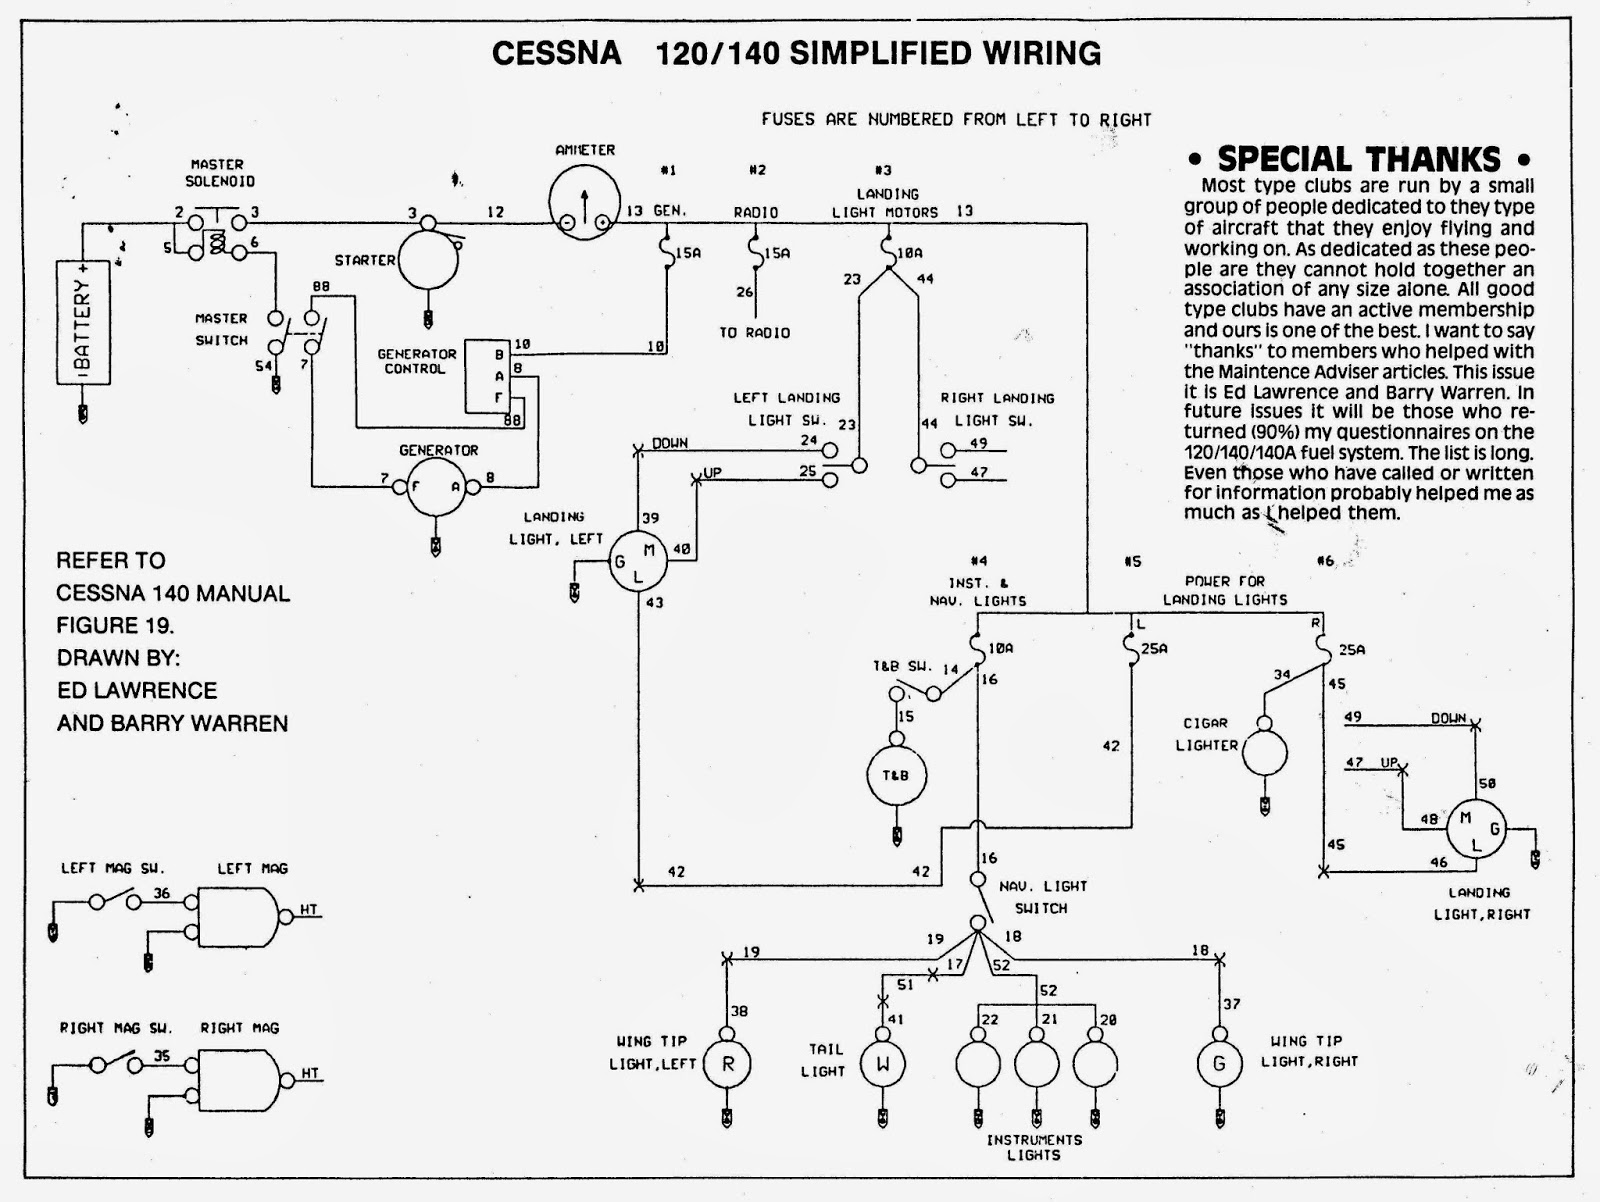 "Cessna Alternator Wiring Diagram | Wiring Diagram on john deere tractor wiring, john deere power beyond diagram, john deere 212 diagram, john deere fuse box diagram, john deere voltage regulator wiring, john deere starters diagrams, john deere chassis, john deere 345 diagram, john deere gt235 diagram, john deere repair diagrams, john deere fuel system diagram, john deere rear end diagrams, john deere sabre mower belt diagram, john deere 3020 diagram, john deere riding mower diagram, john deere 310e backhoe problems, john deere cylinder head, john deere 42"" deck diagrams, john deere fuel gauge wiring, john deere electrical diagrams,"